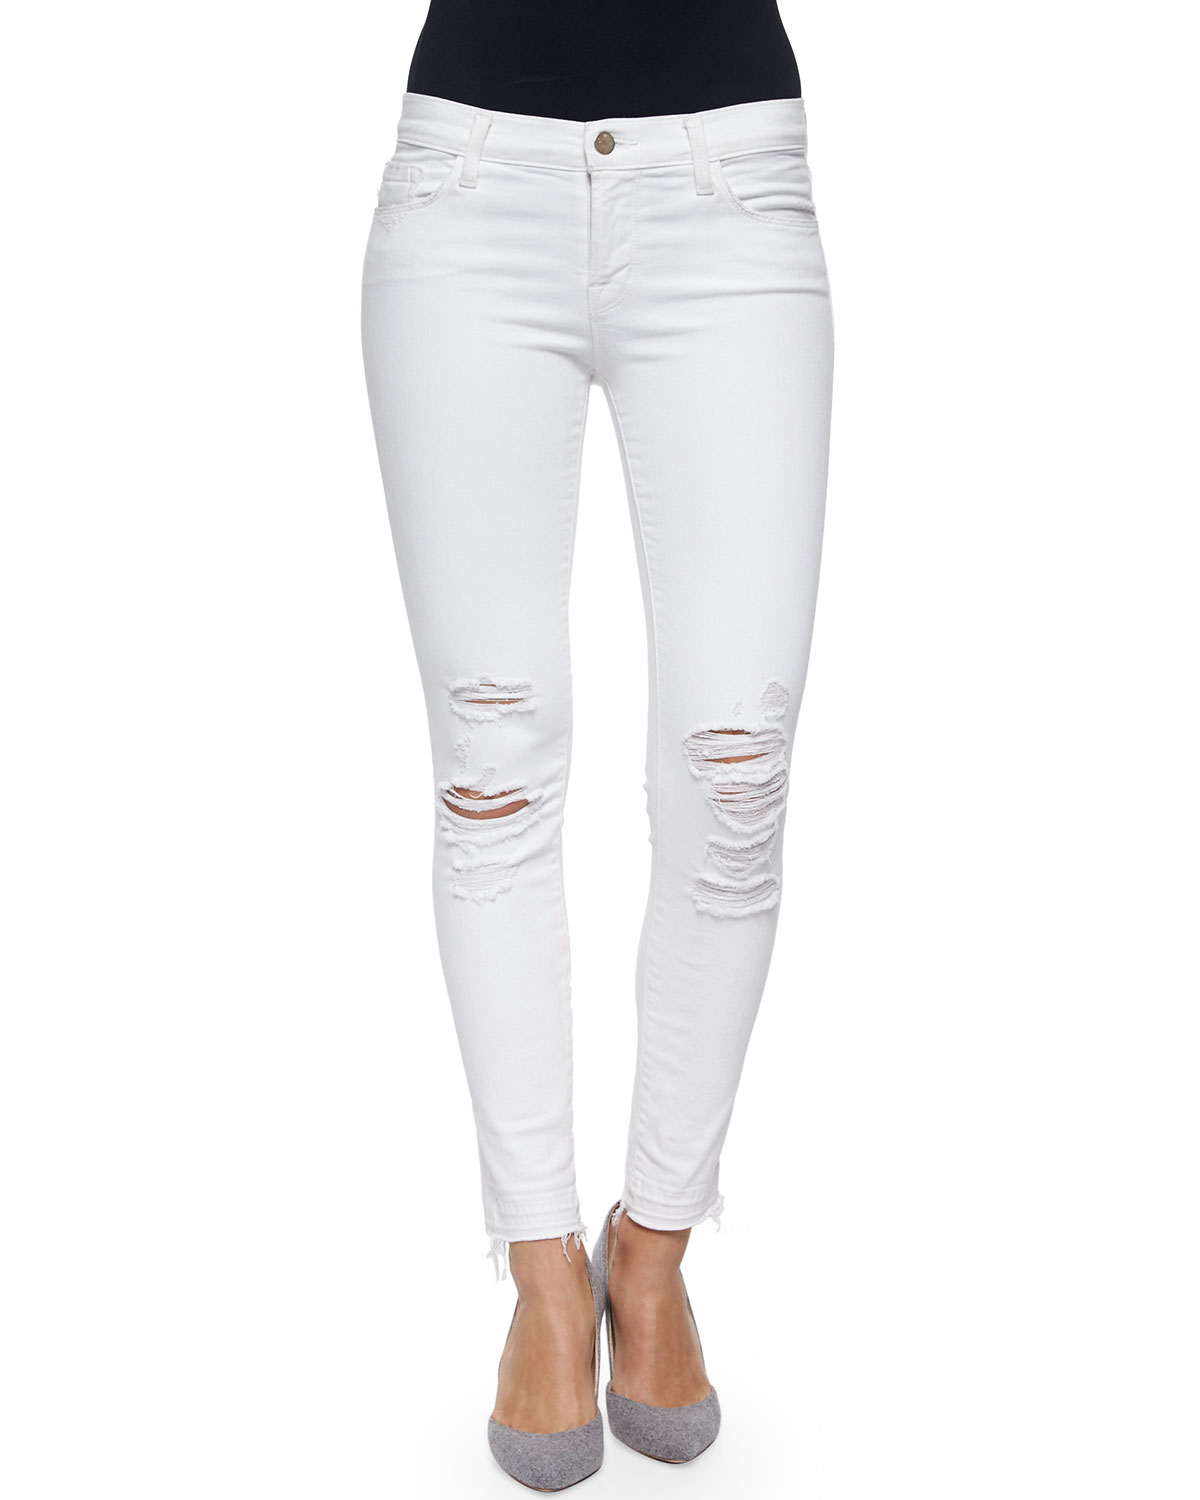 J brand Low-rise Skinny Crop Jeans in White - Save 66% | Lyst